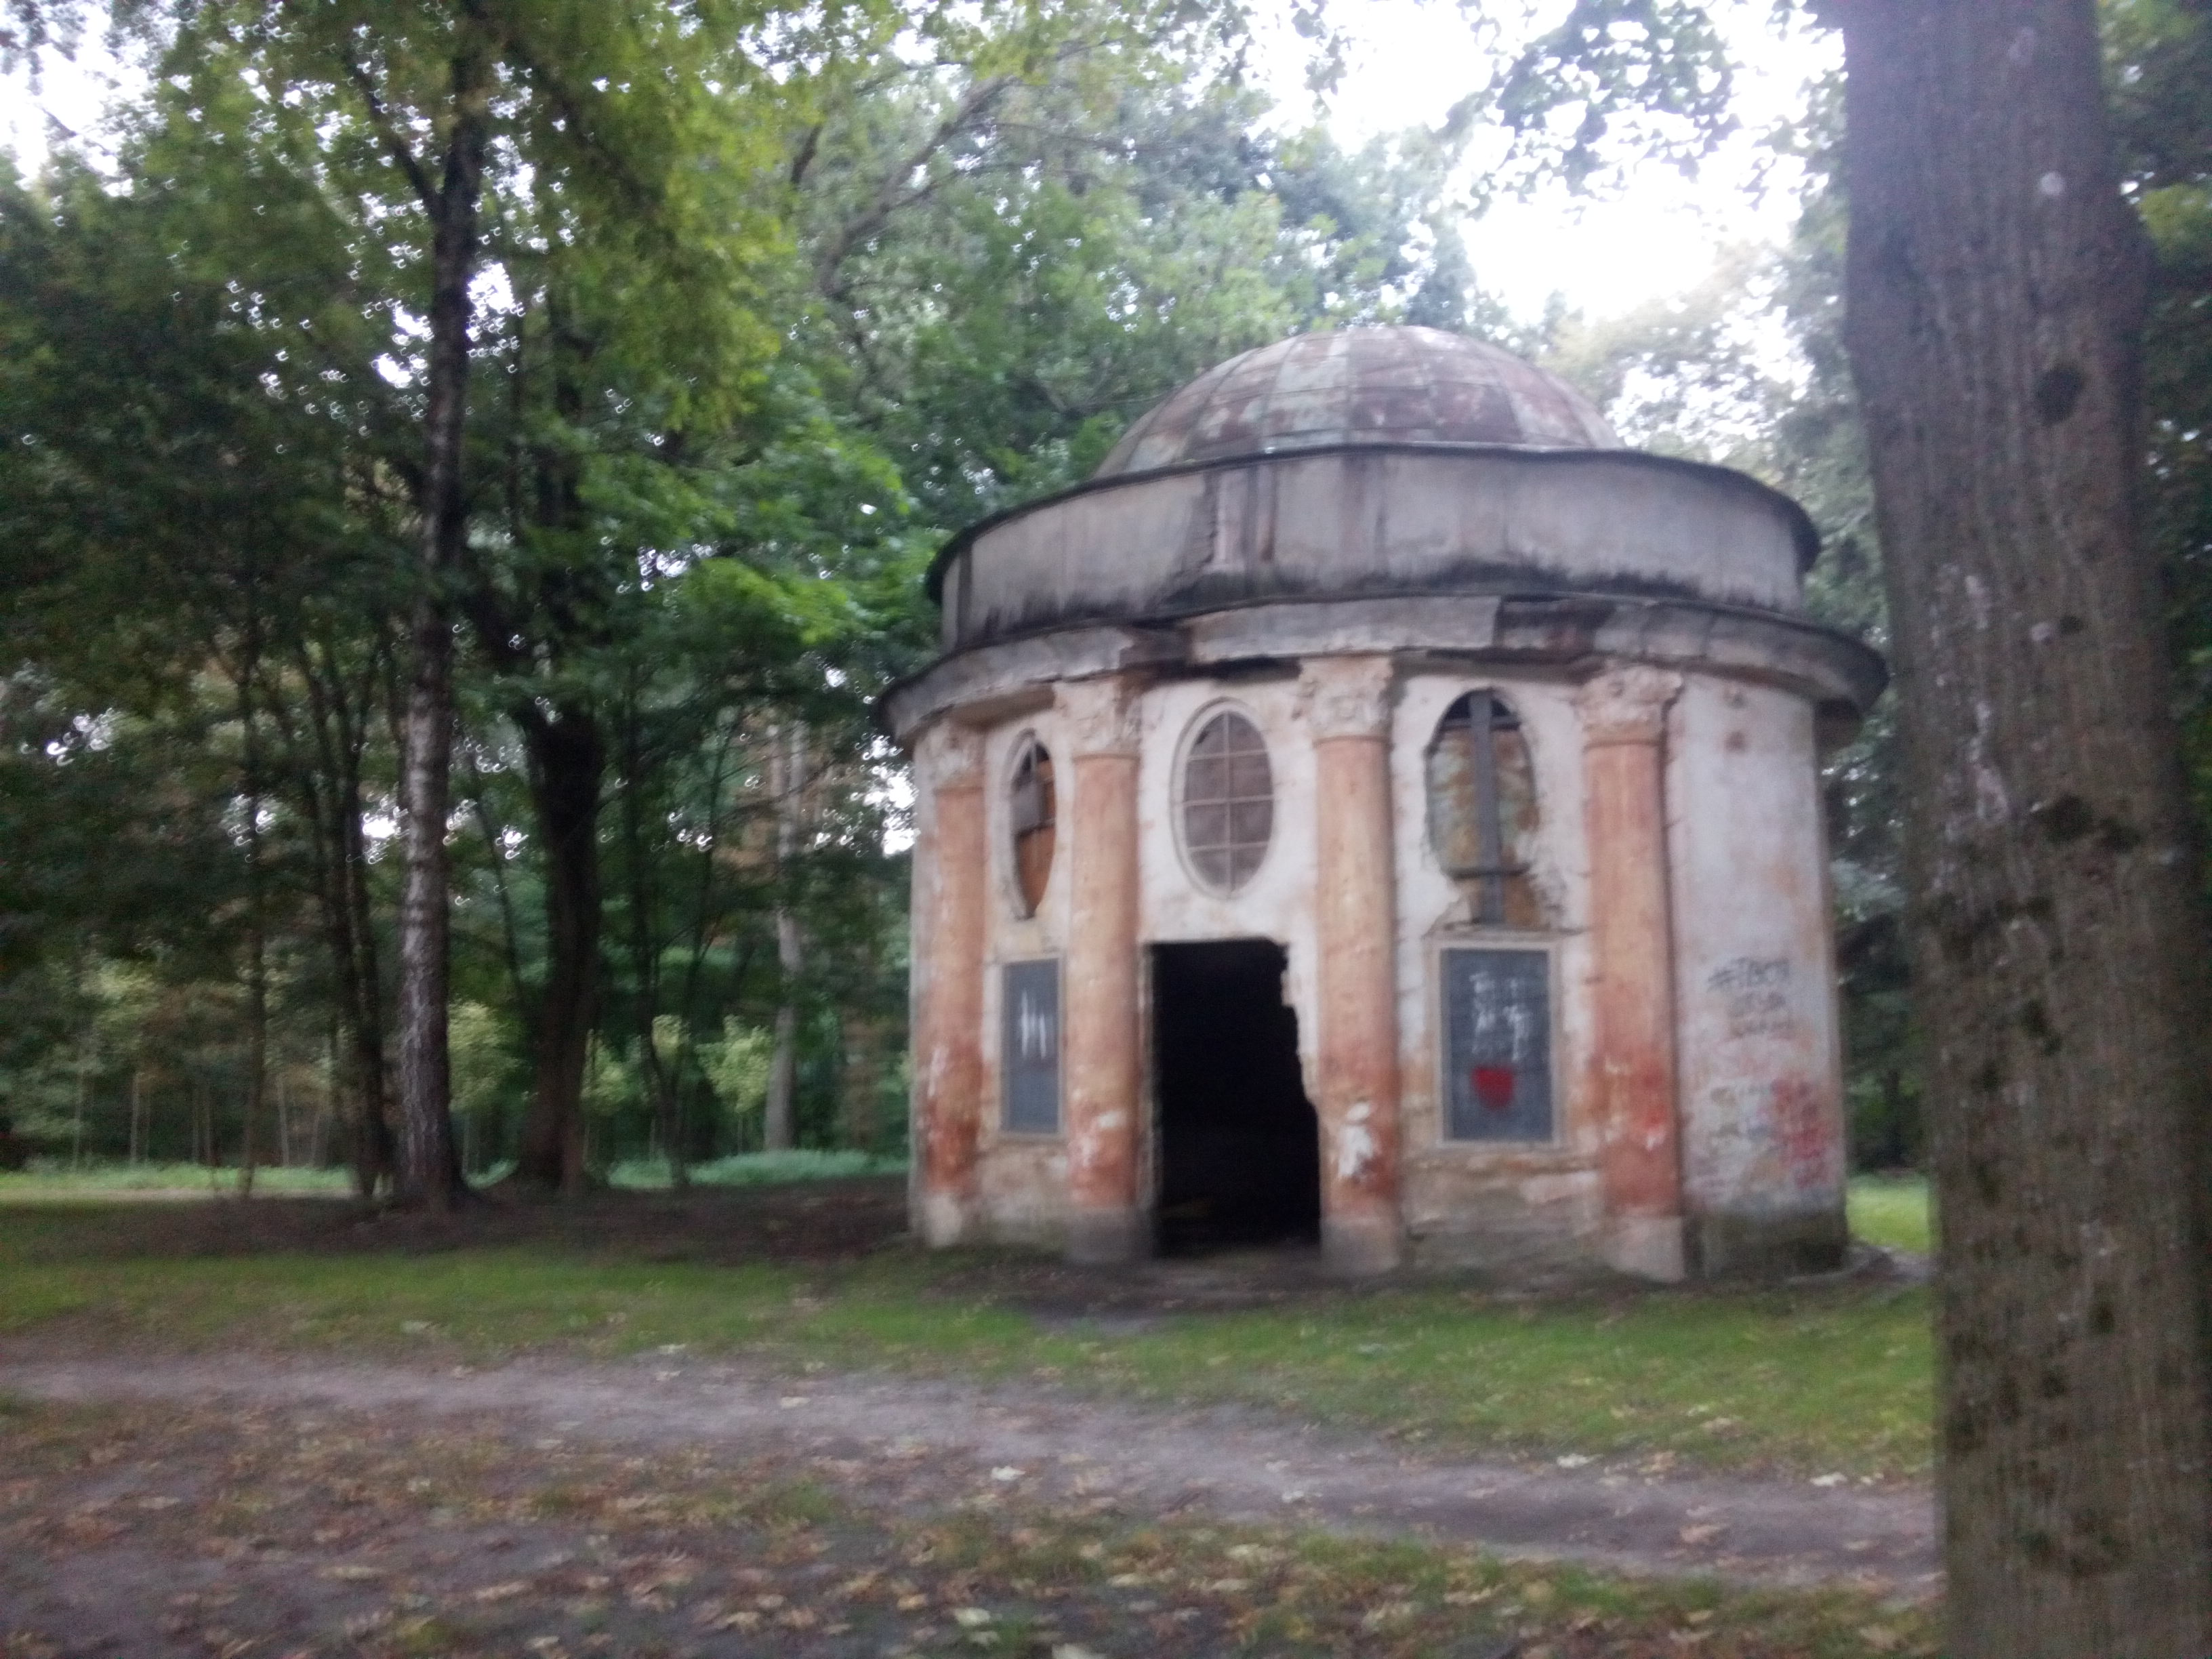 Round derelict building with a domed roof amongst the trees